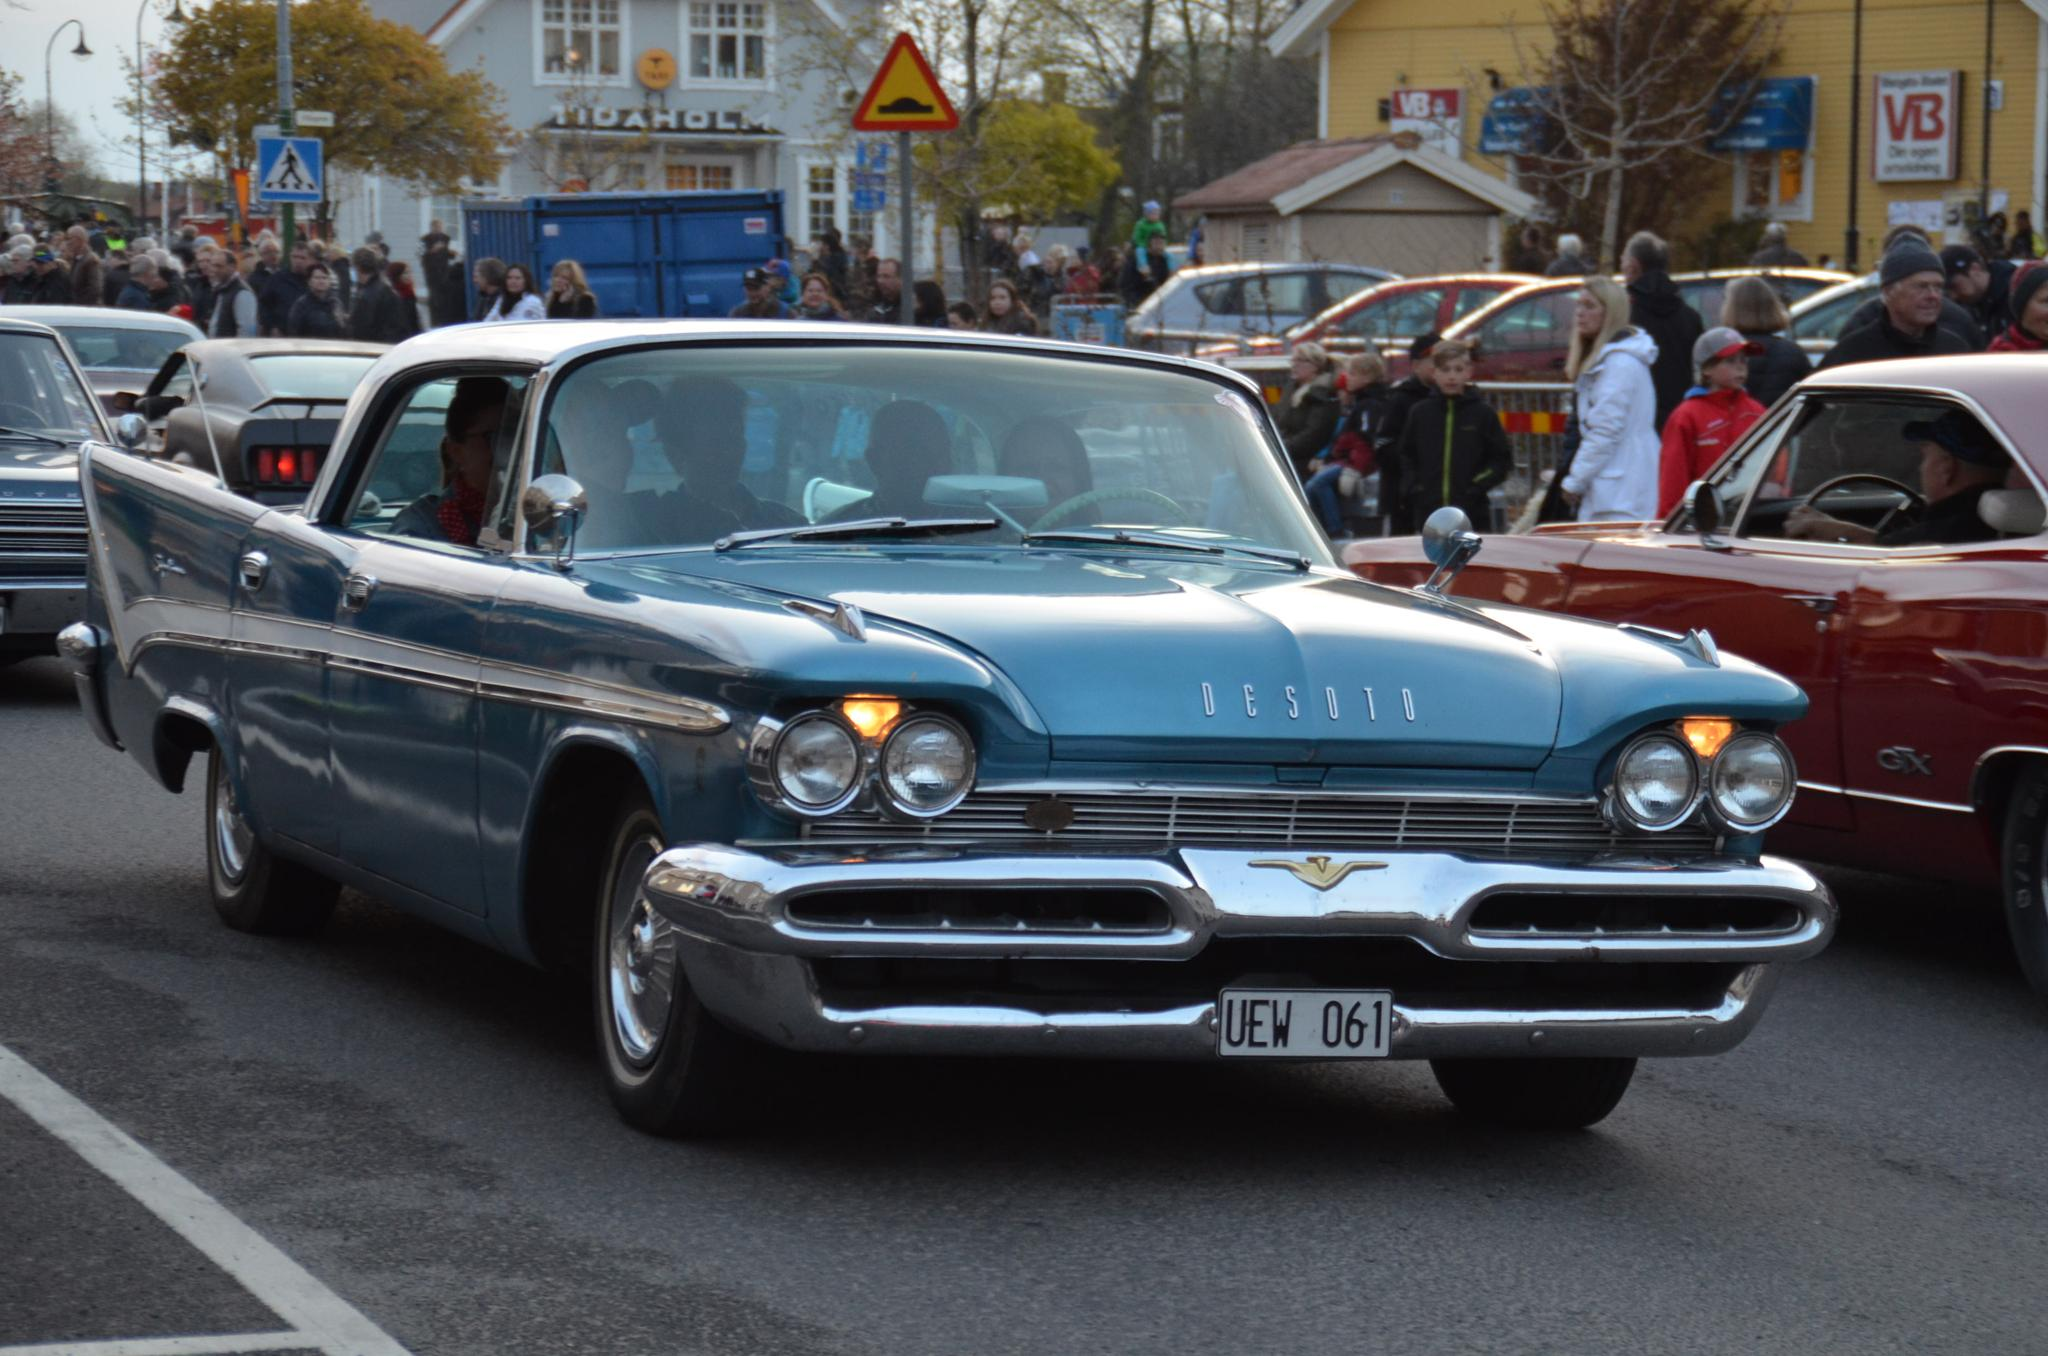 Desoto at Tidaholms Crusing by OldTractorPhotography